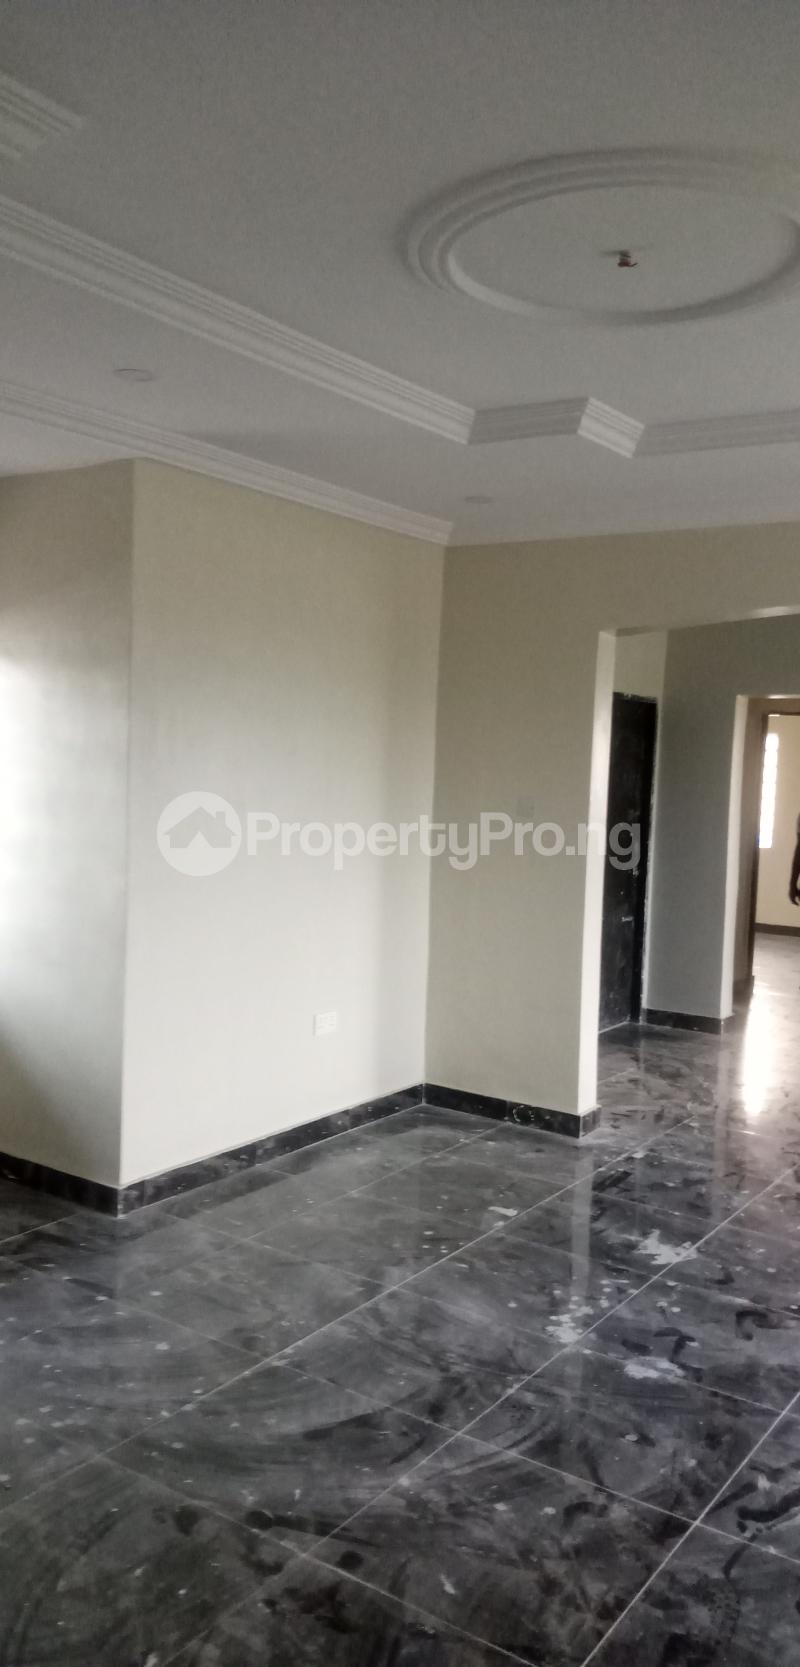 2 bedroom Flat / Apartment for rent Badore Ajah Lagos - 25